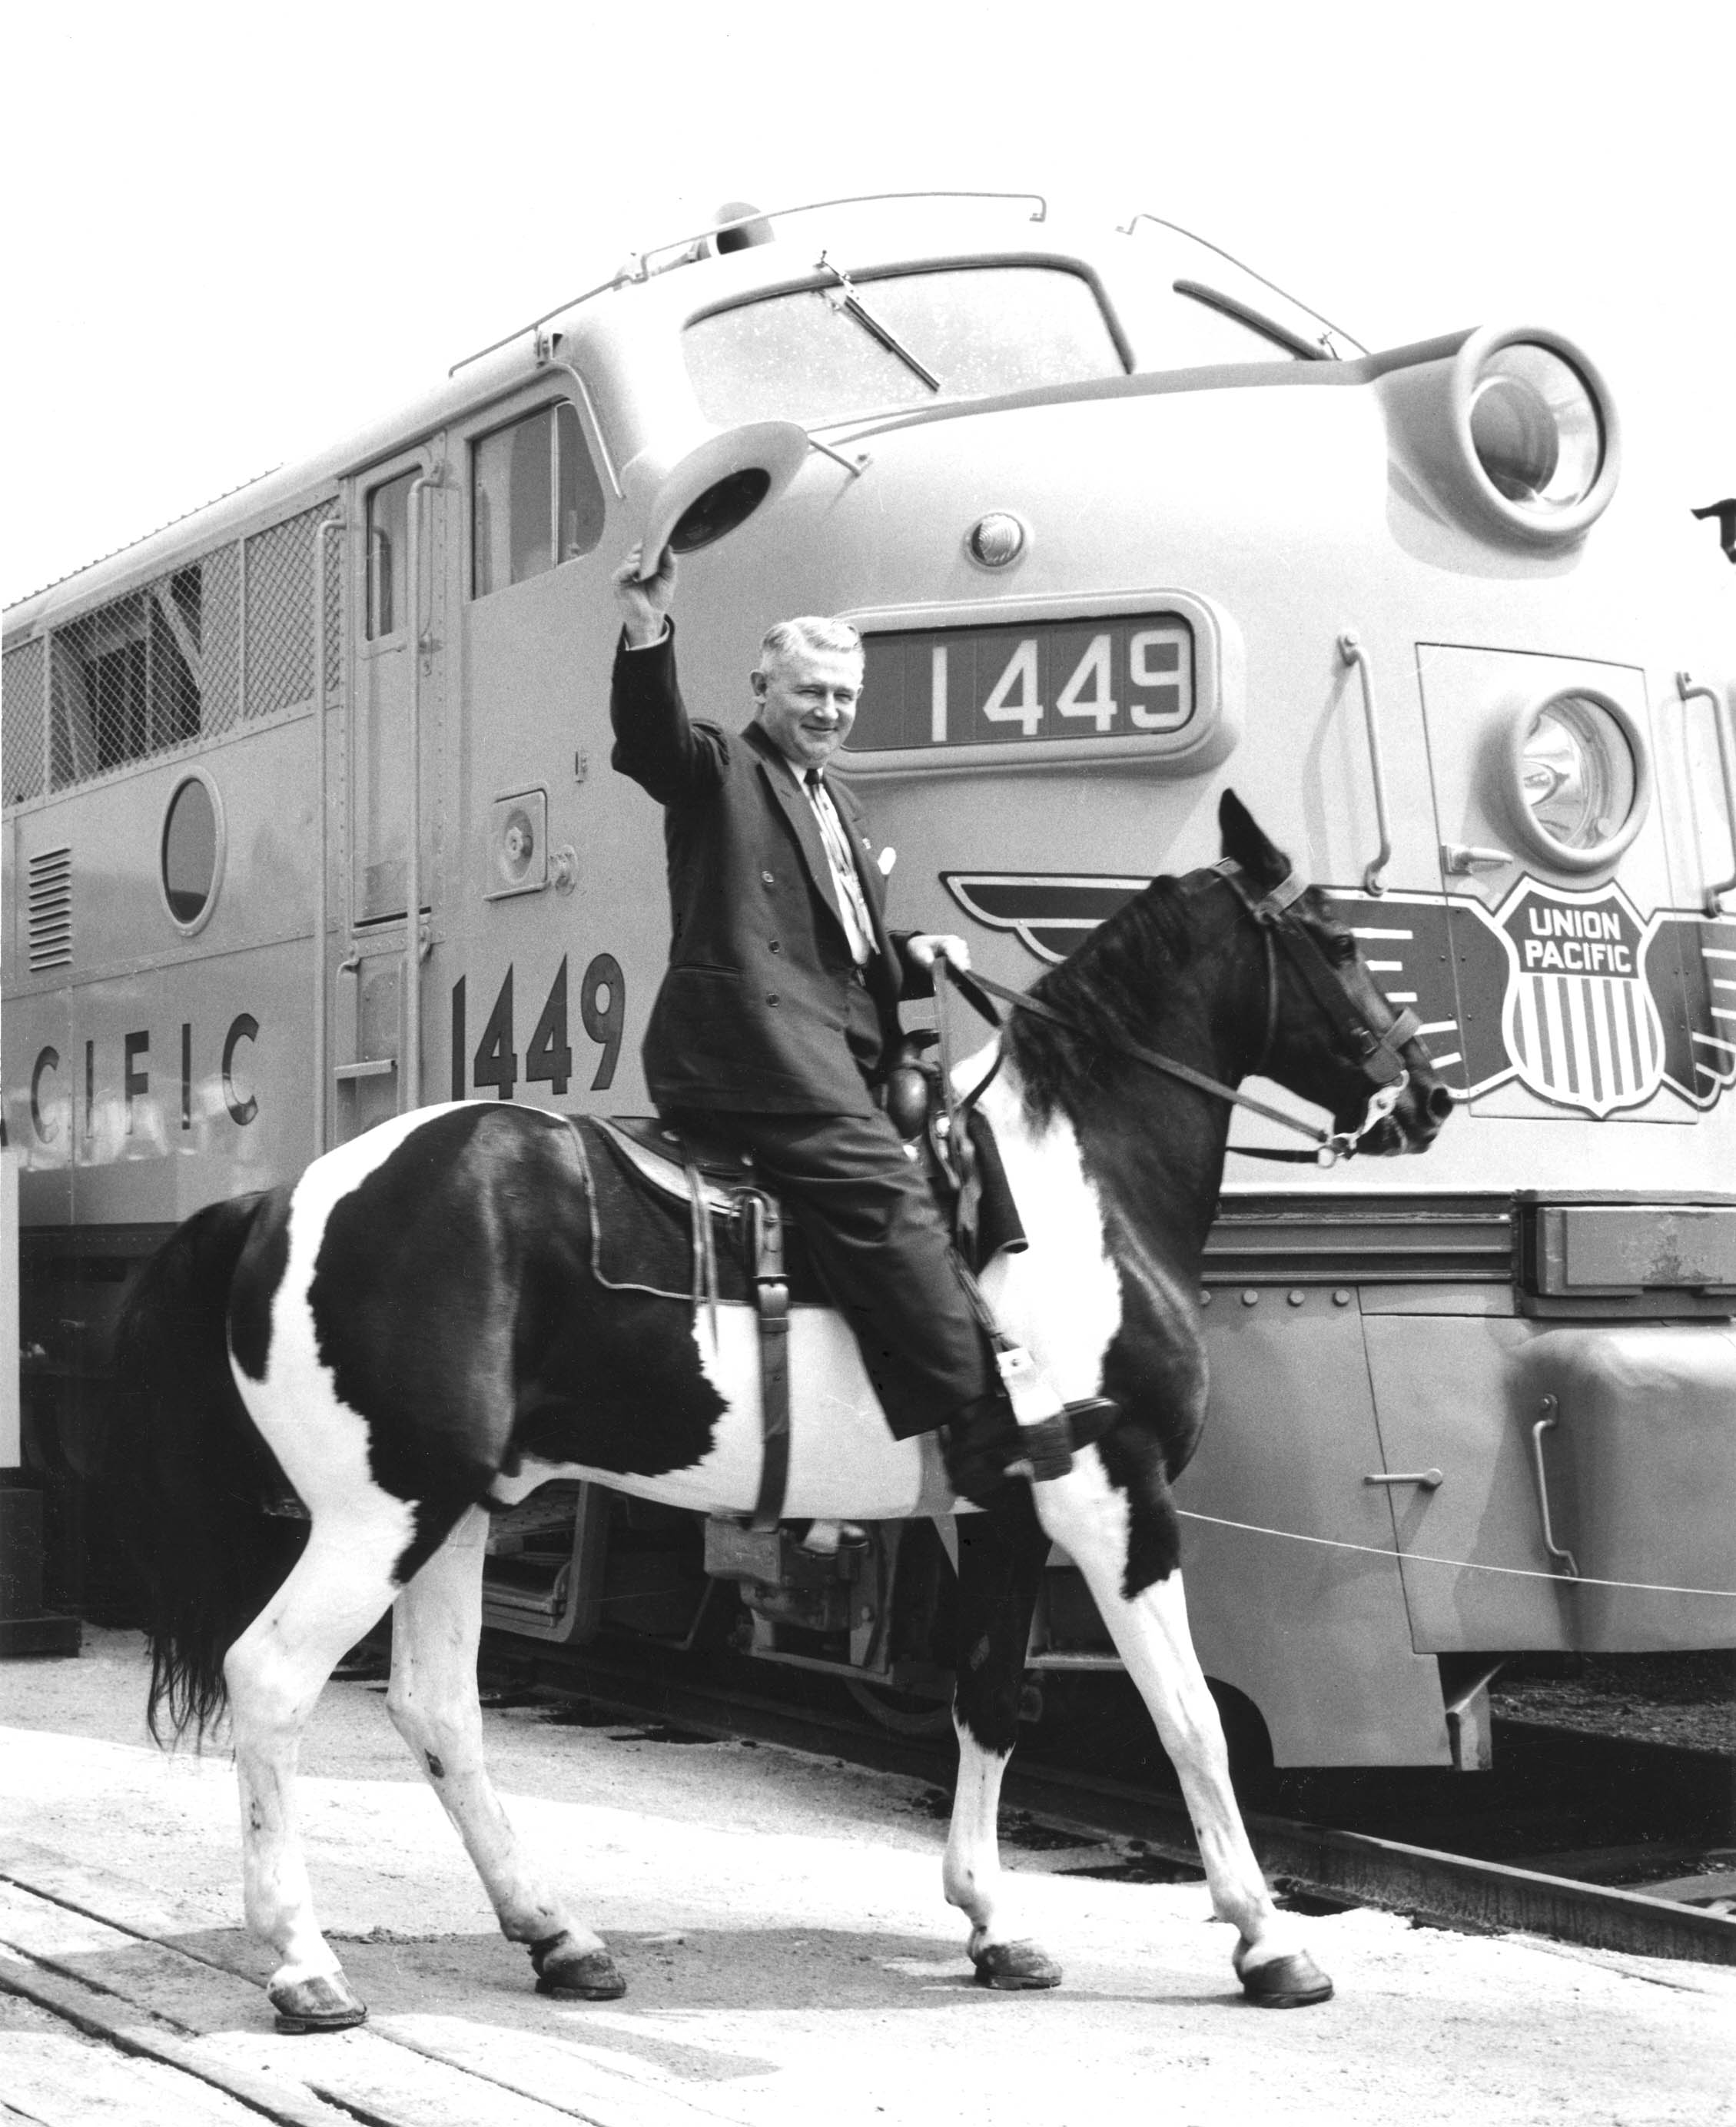 Lester Hunt rides a pinto horse next to a Union Pacific engine, in 1945.